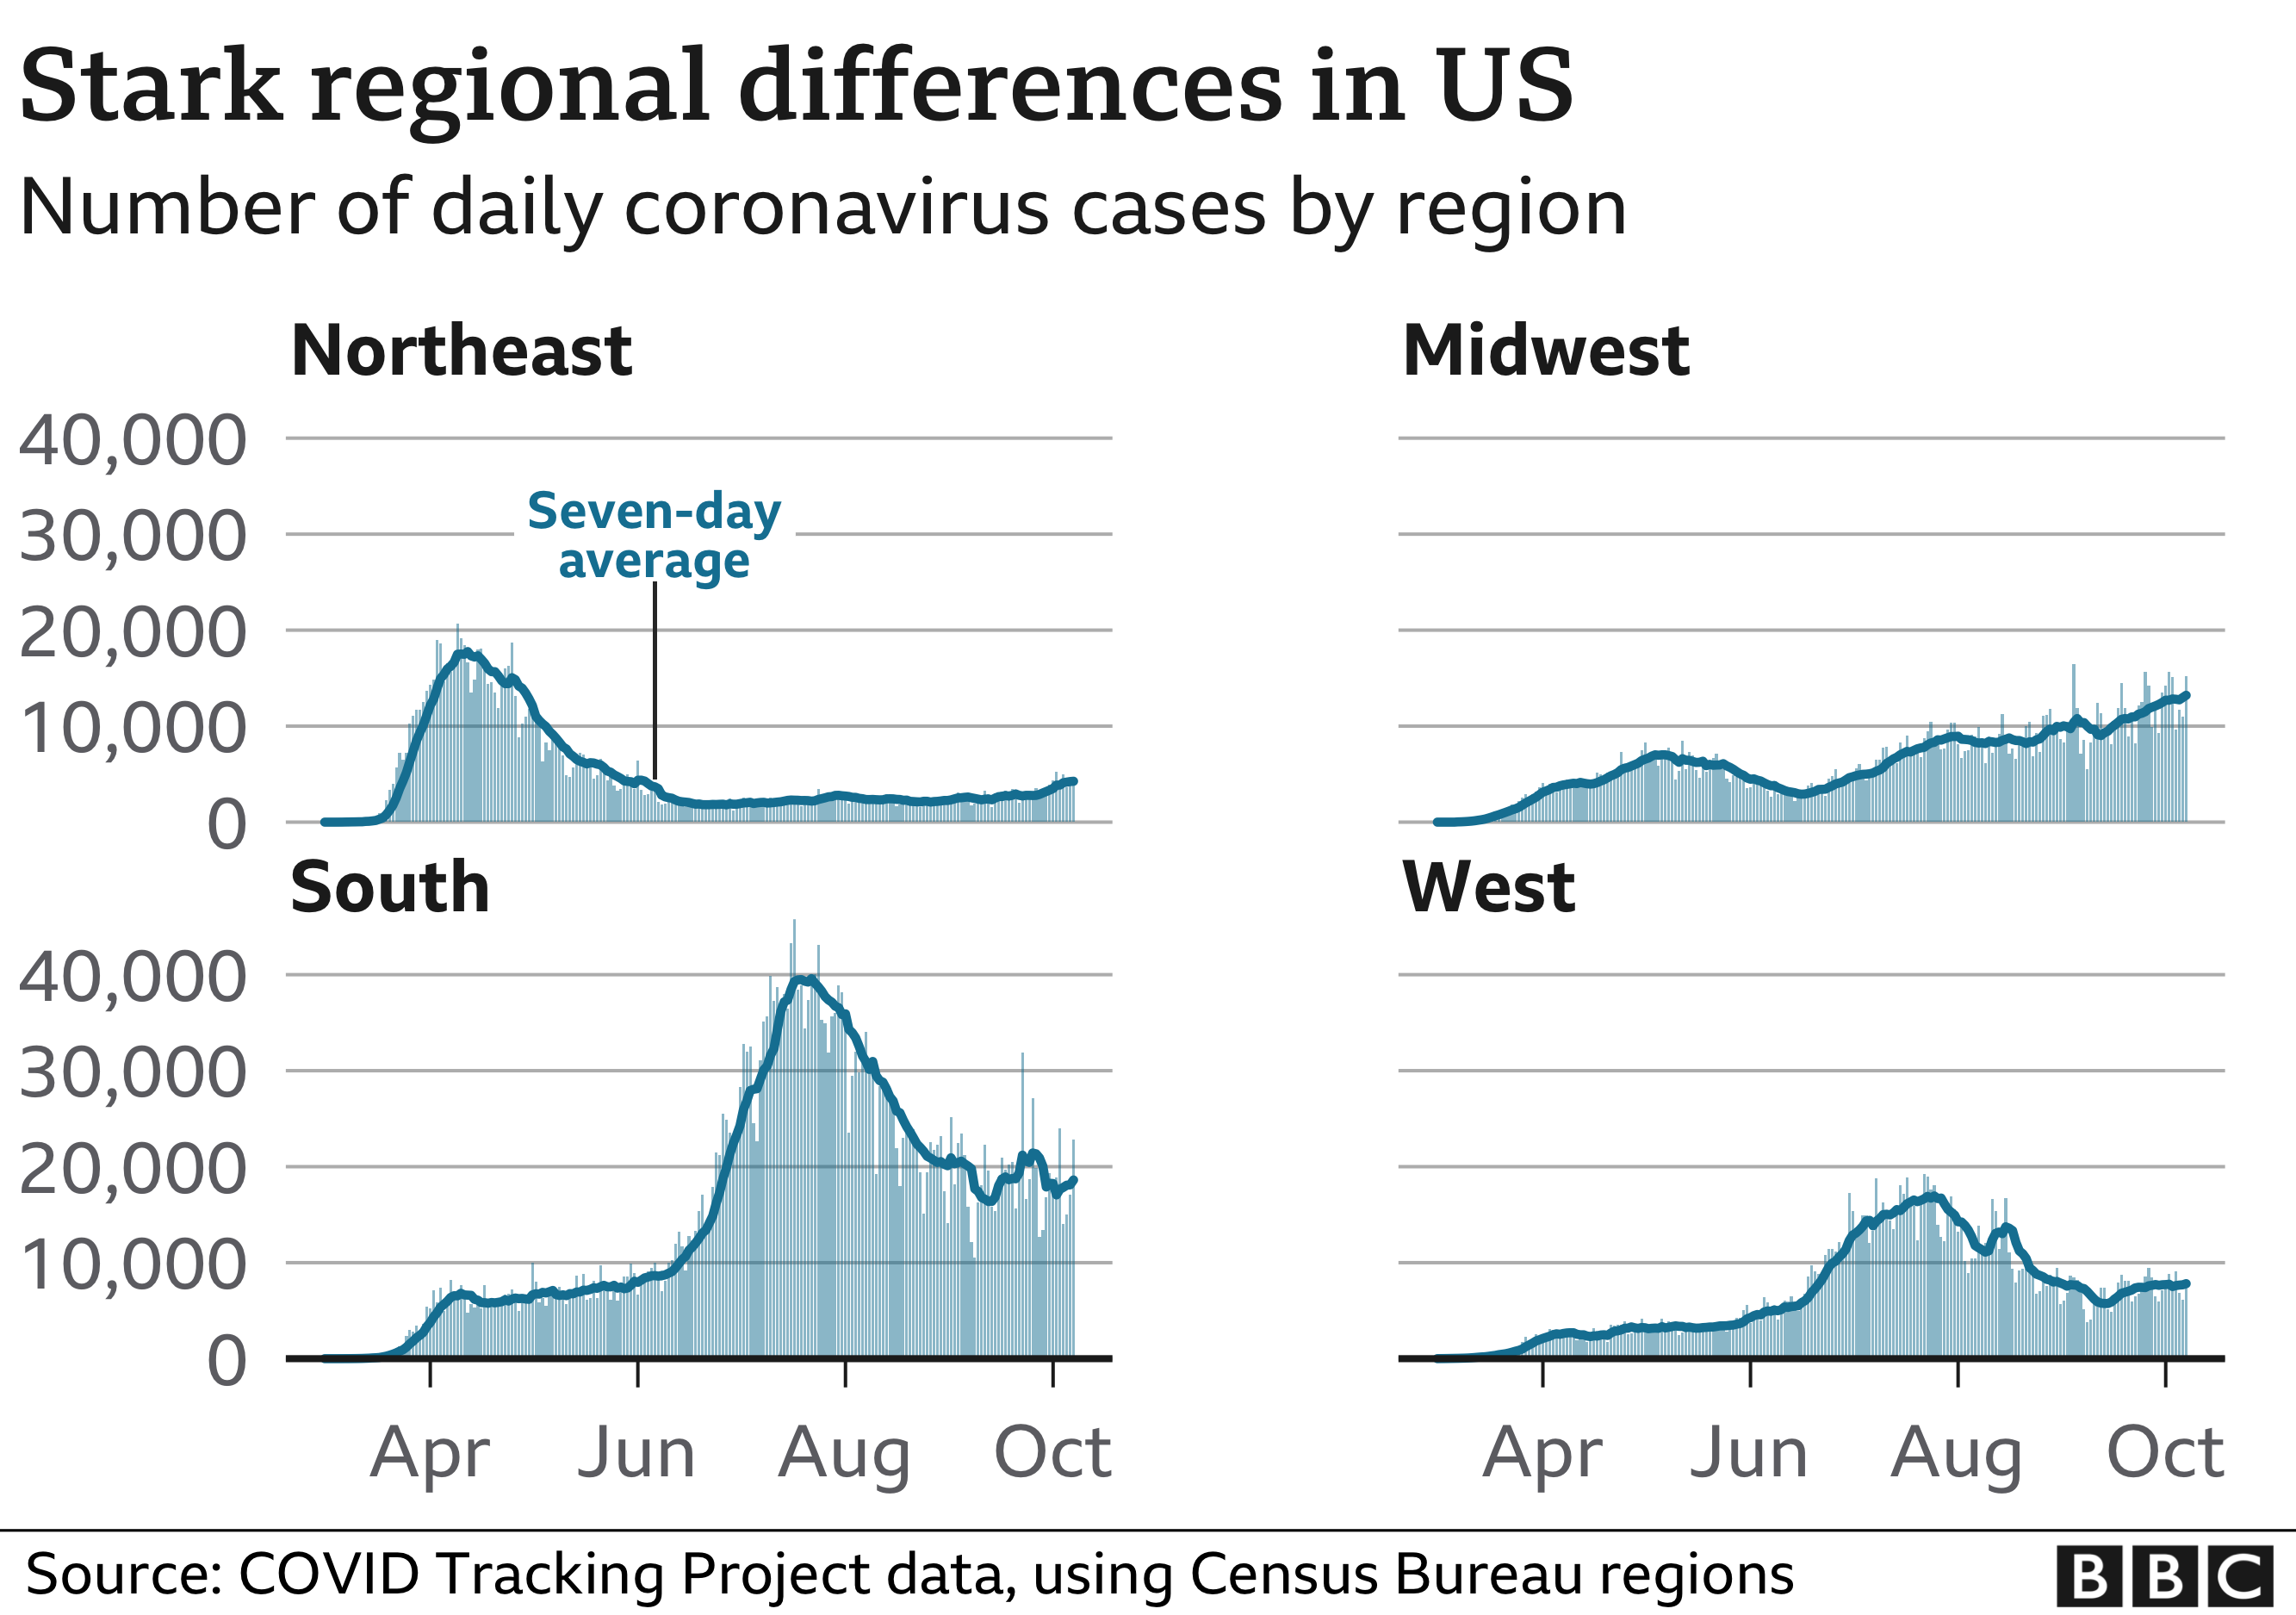 Chart showing the regional differences in the number of daily cases